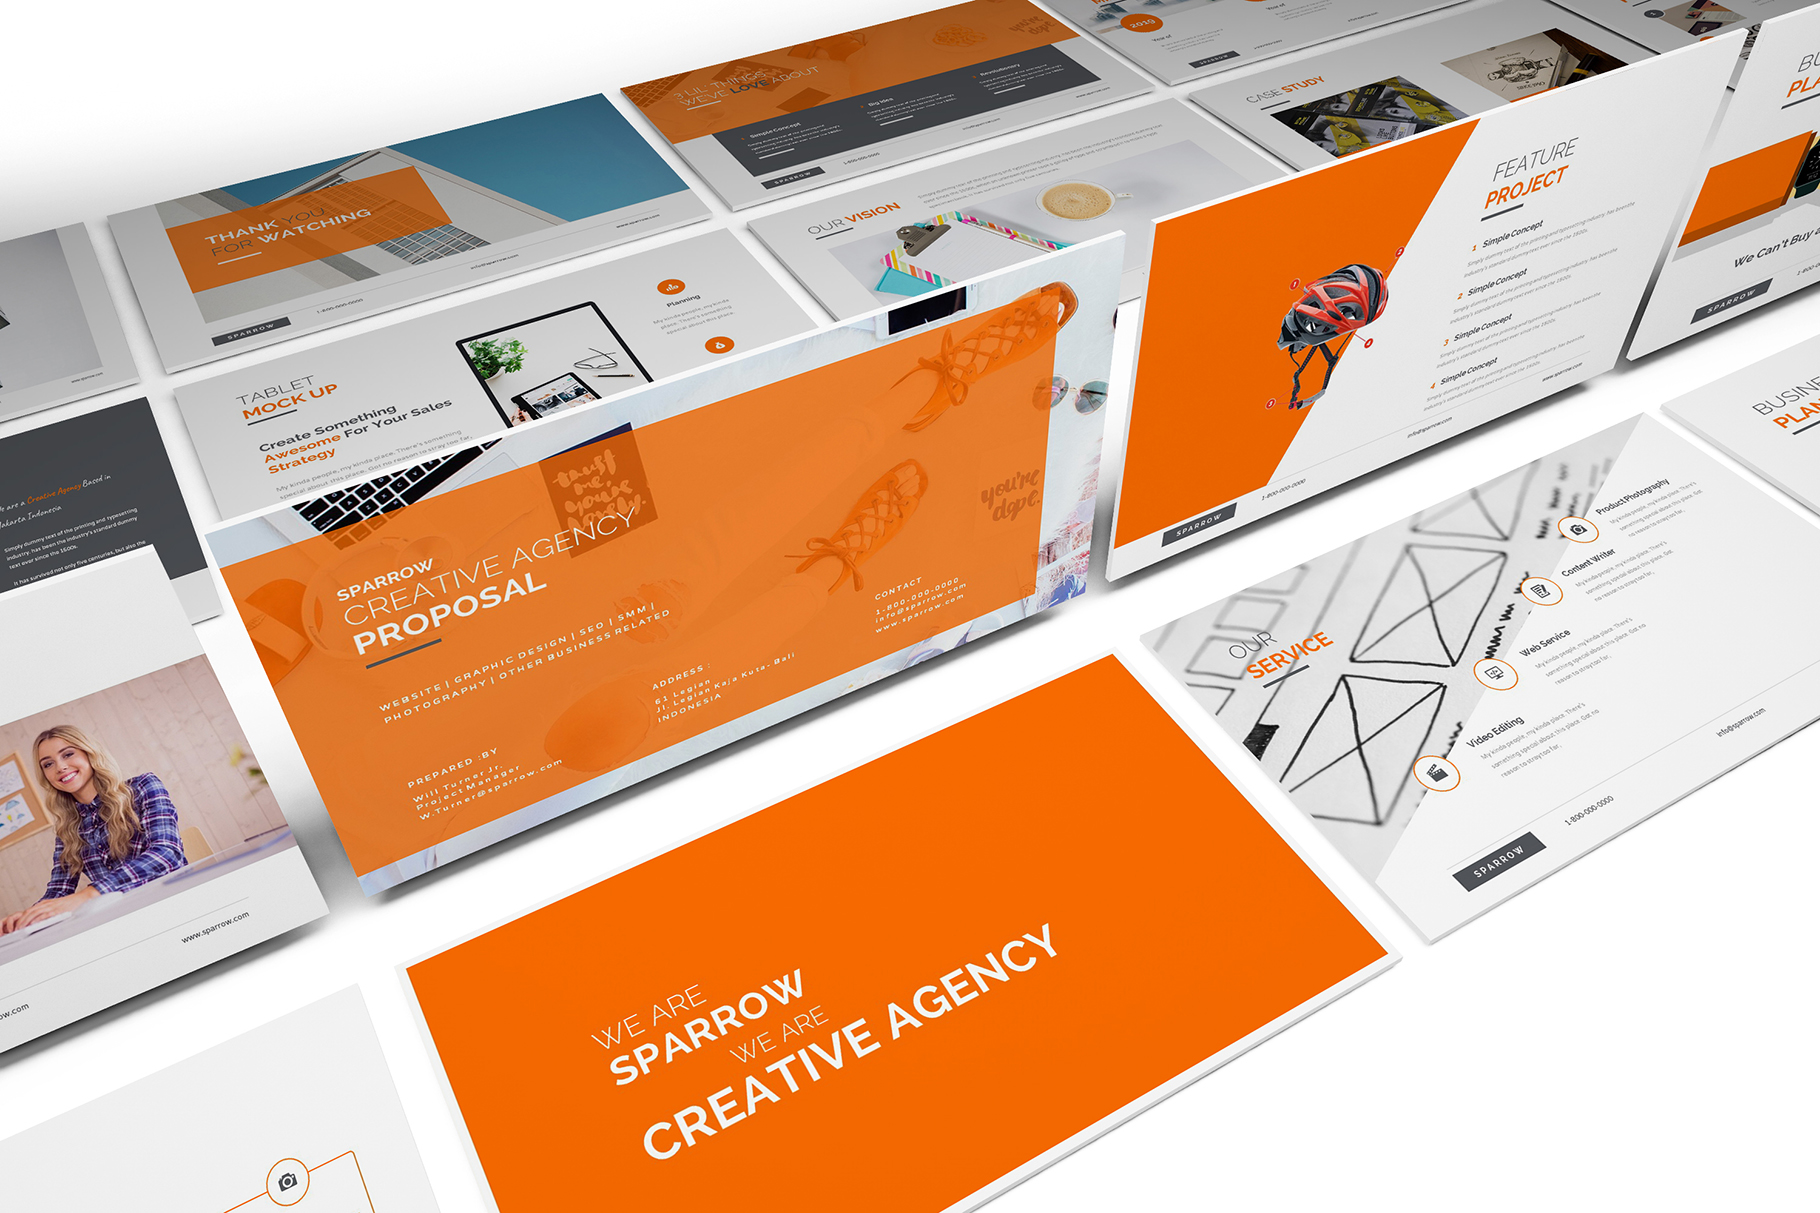 Sparrow - Creative Agency Powerpoint example image 10